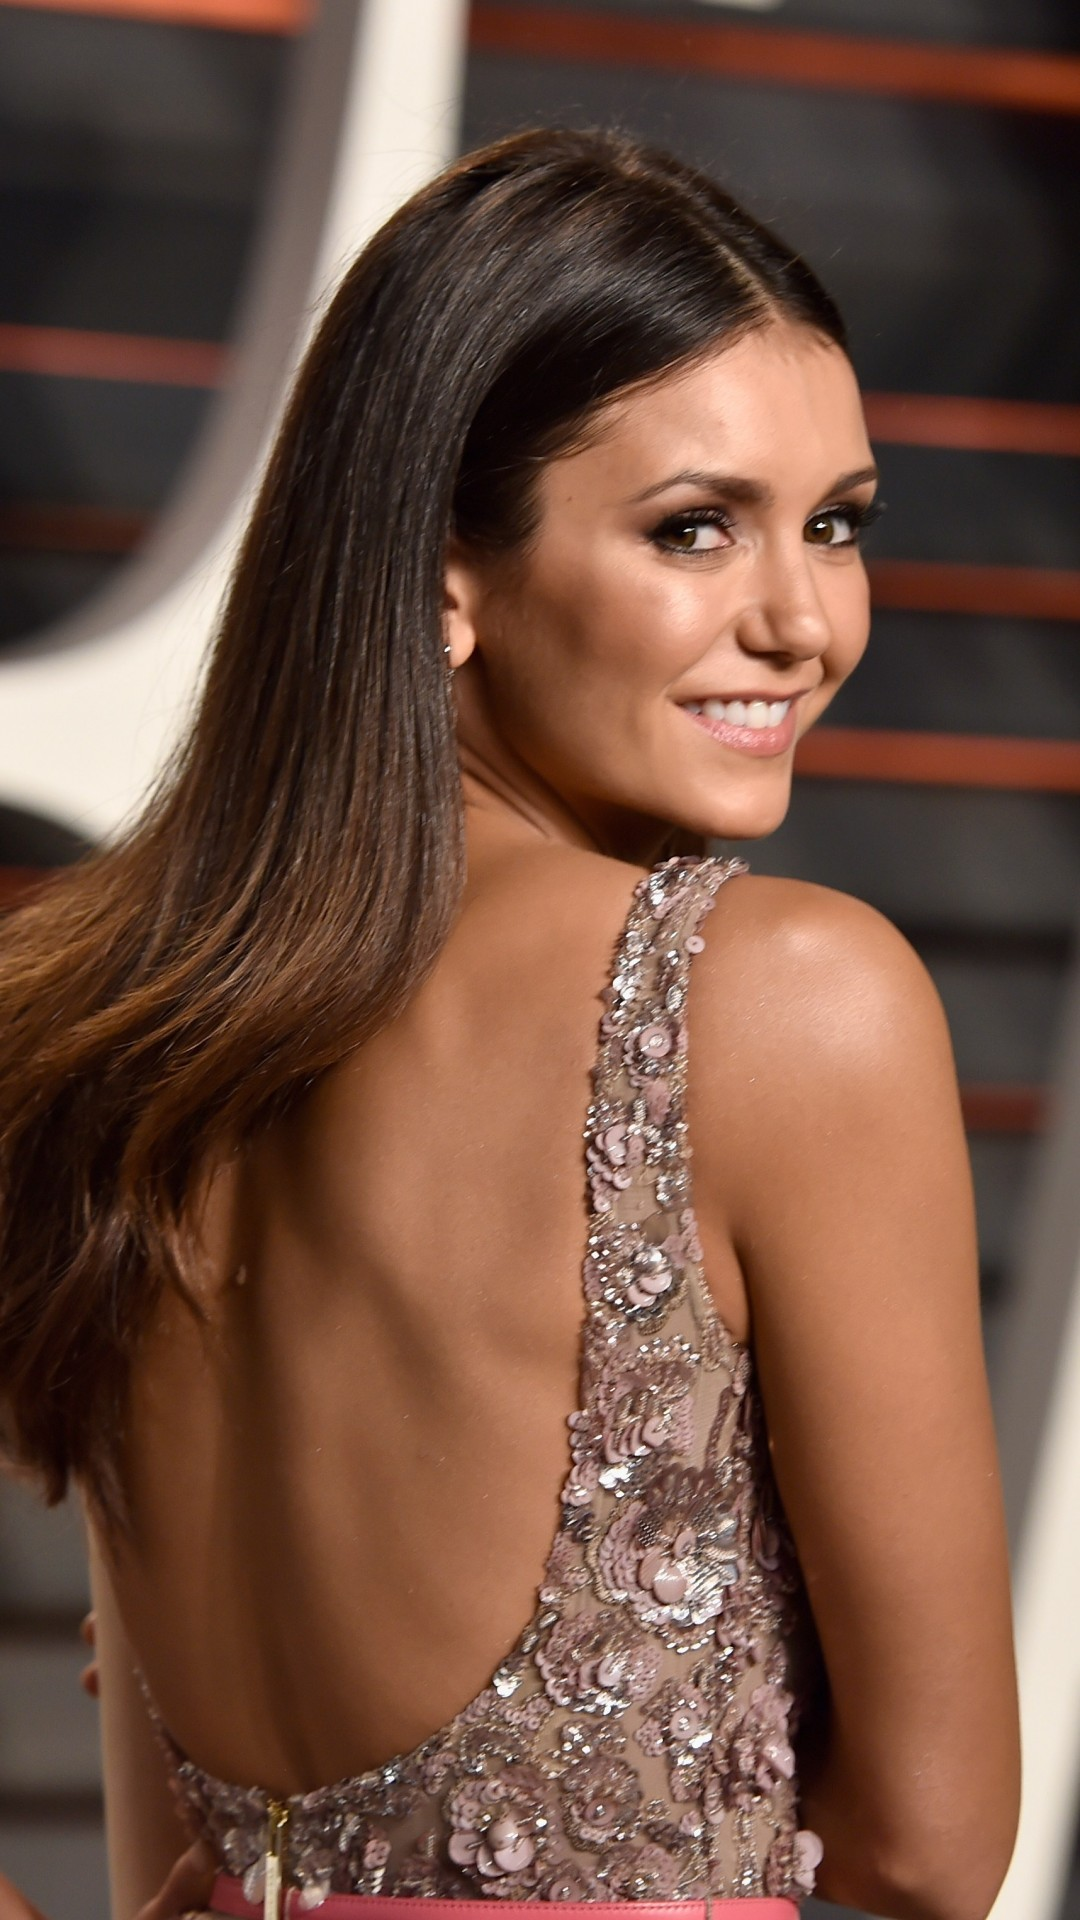 Wallpaper Nina Dobrev Beauty 4k Celebrities 15046